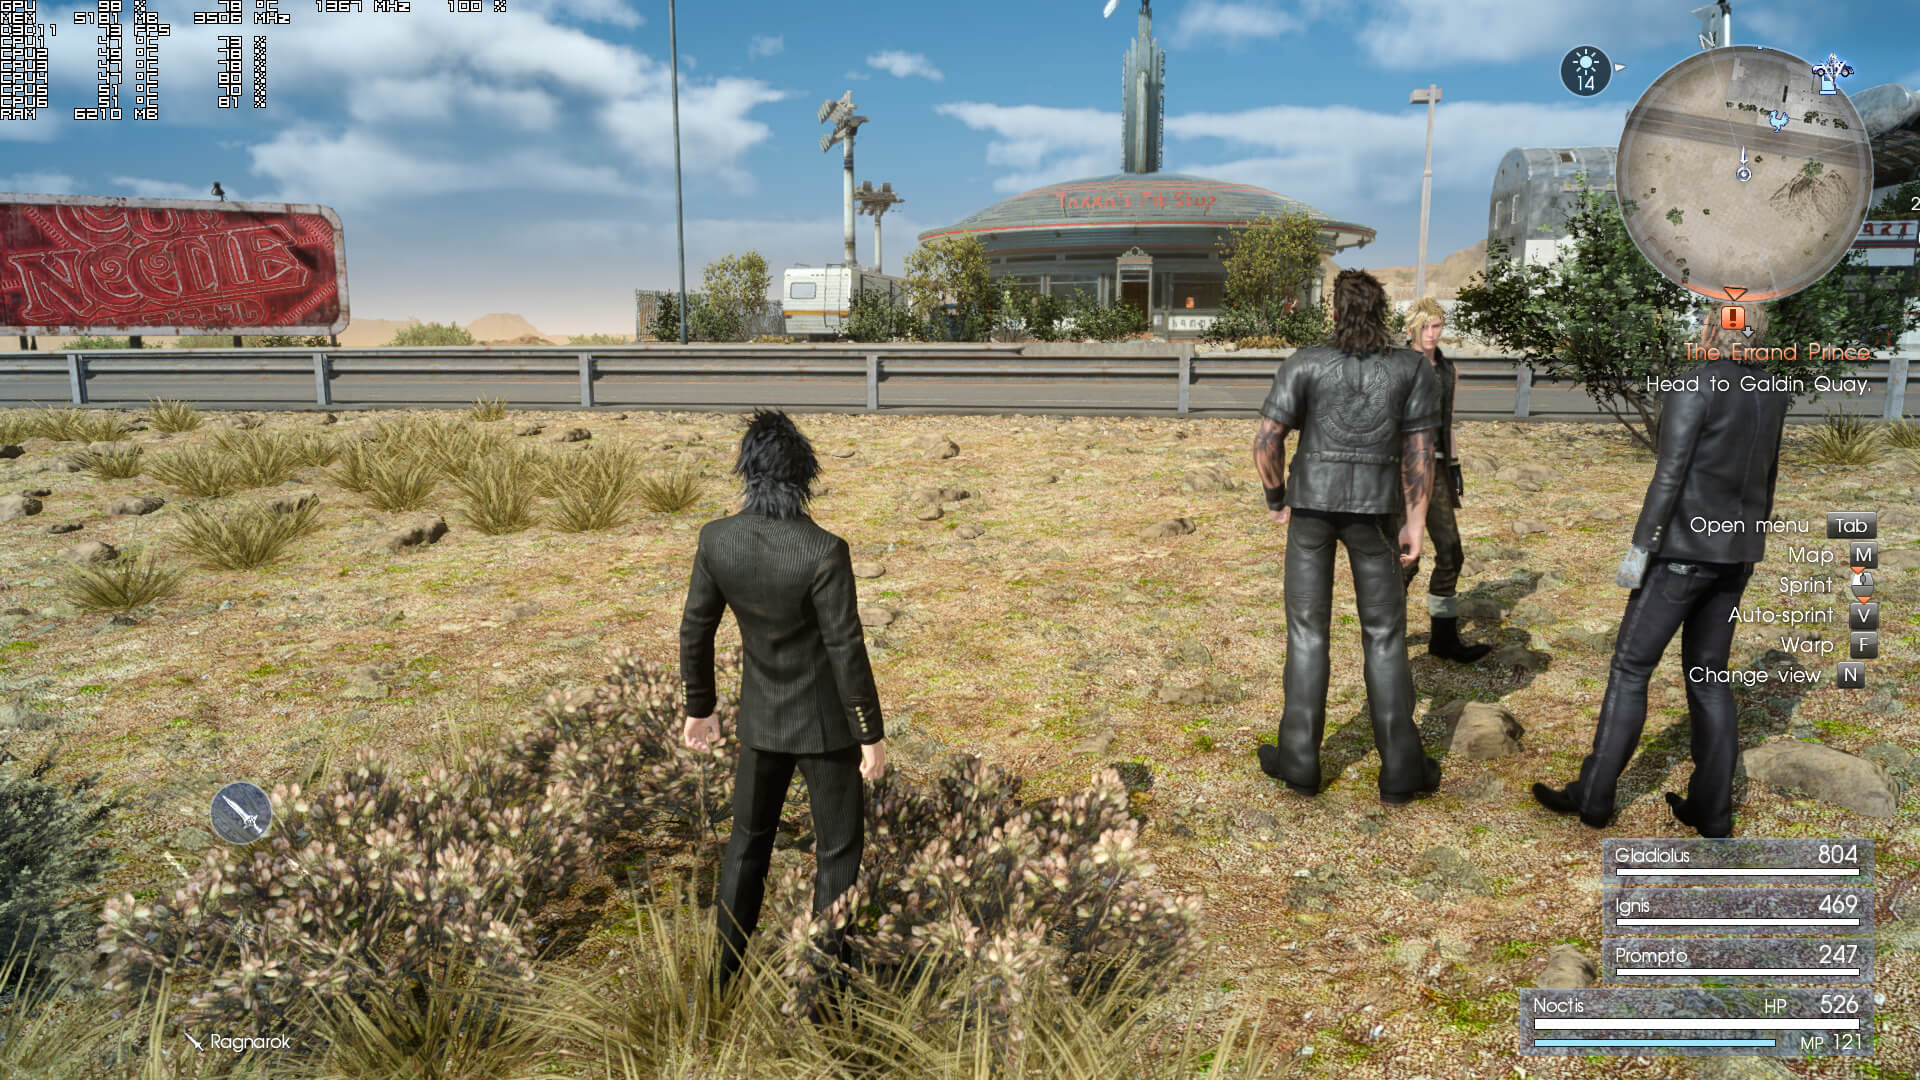 https://www.dsogaming.com/wp-content/uploads/2018/03/ffxv_s_2018_03_12_19_22_32_033.jpg